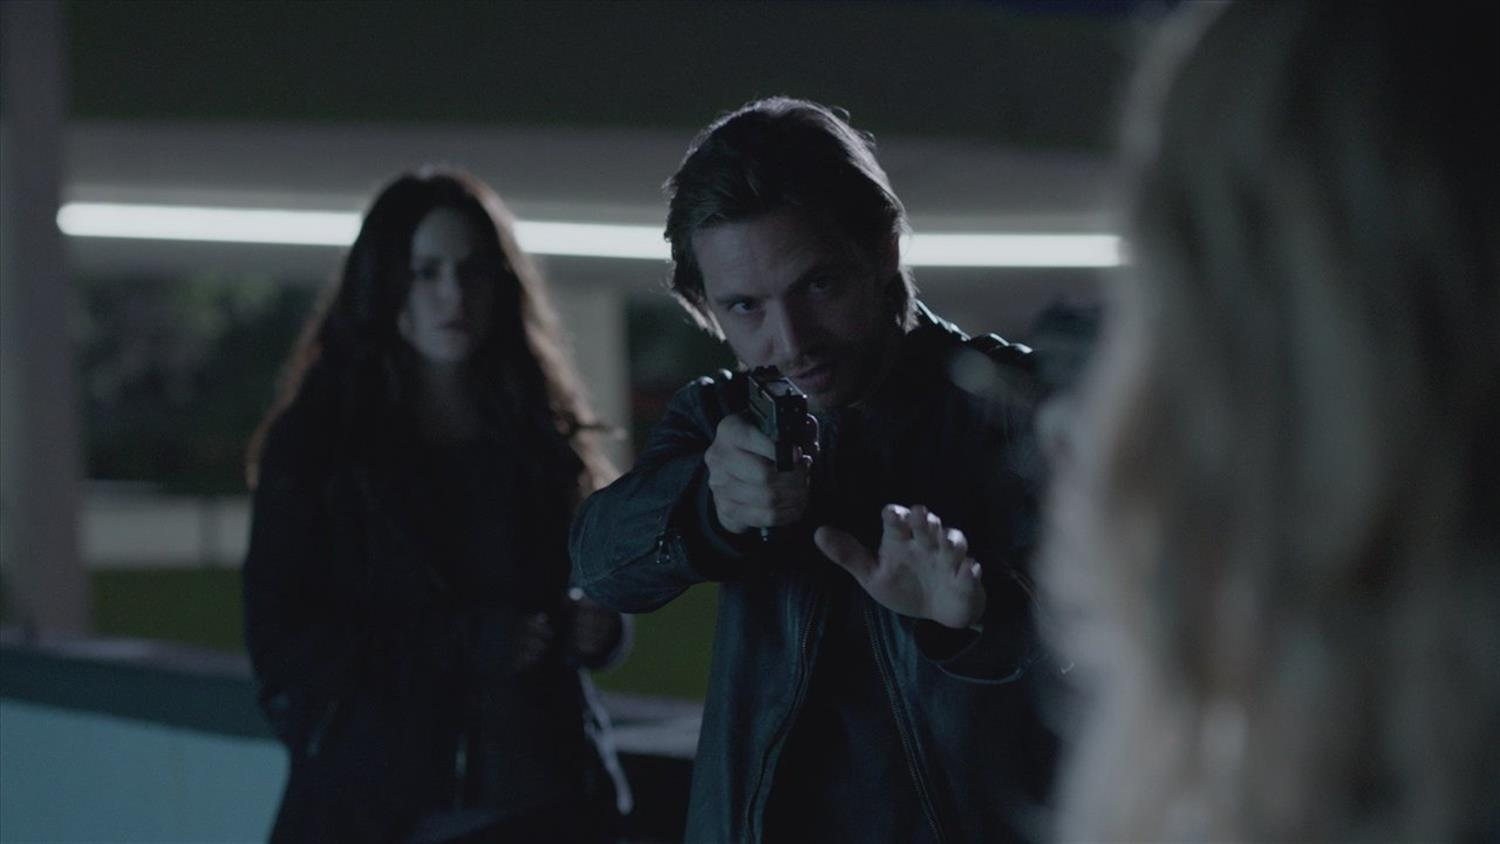 12 Monkeys Recap: Season 2, Episode 2